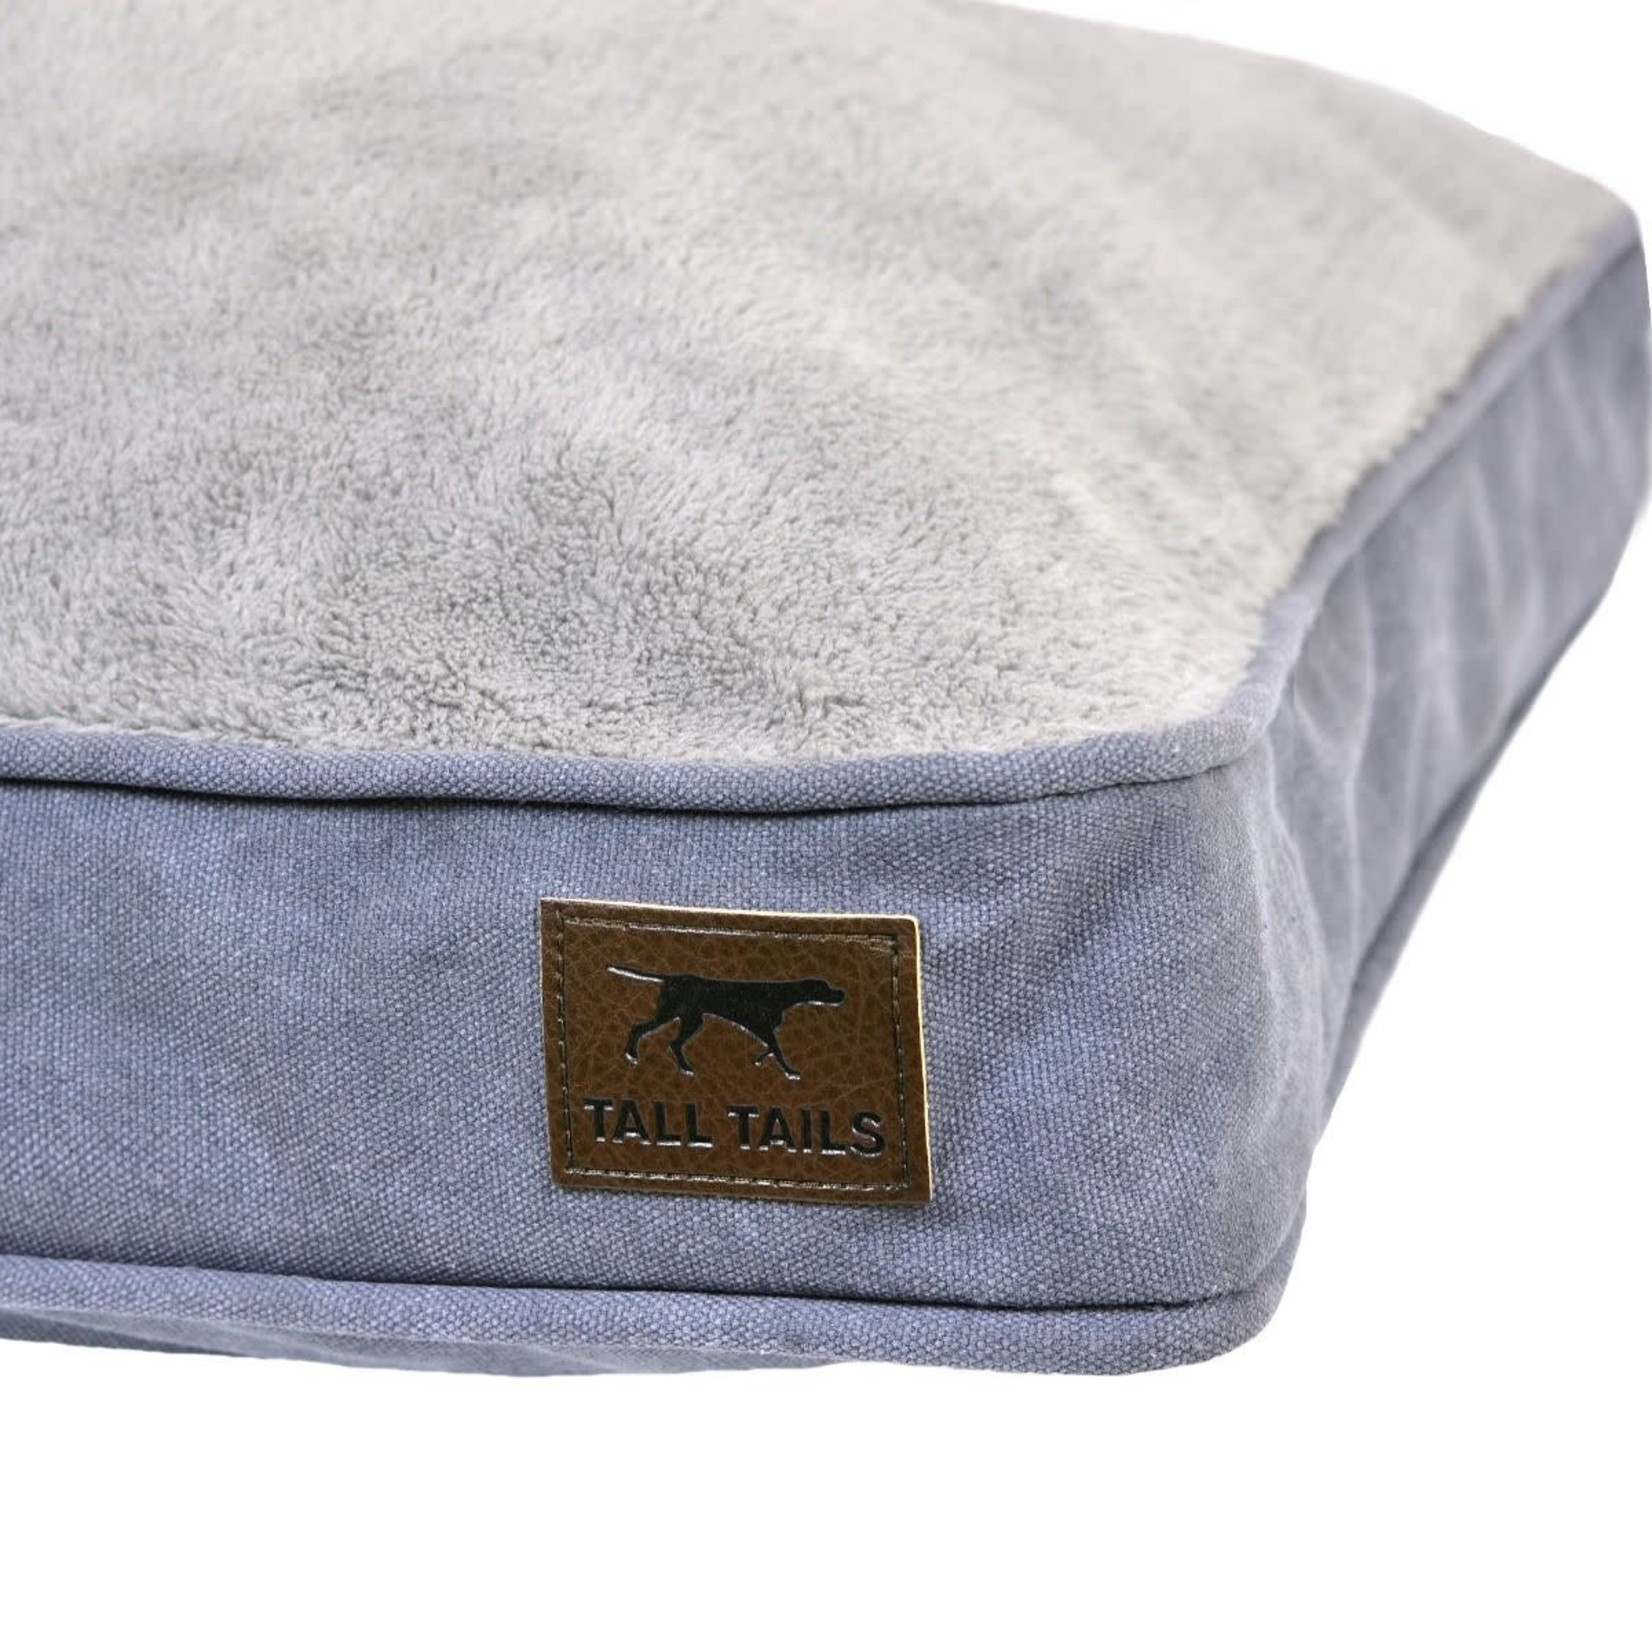 Tall Tails Tall Tails Cushion Bed Charcoal X-Large